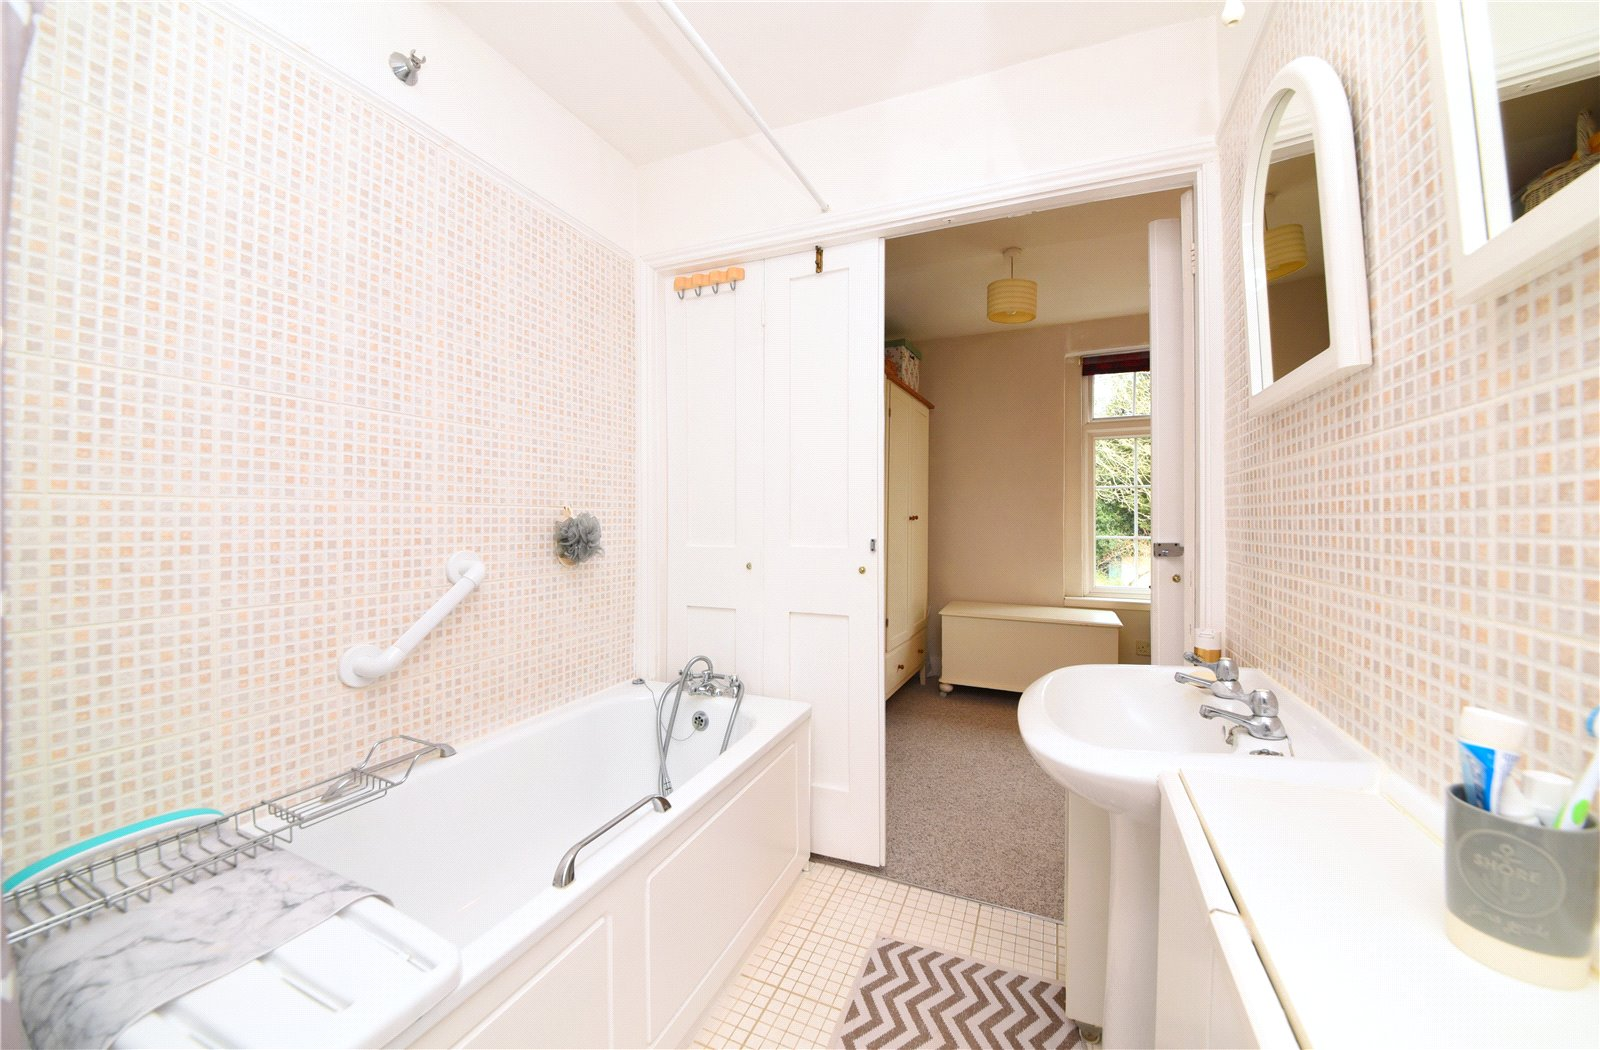 2 bed house for sale in London, N12 9JN  - Property Image 9